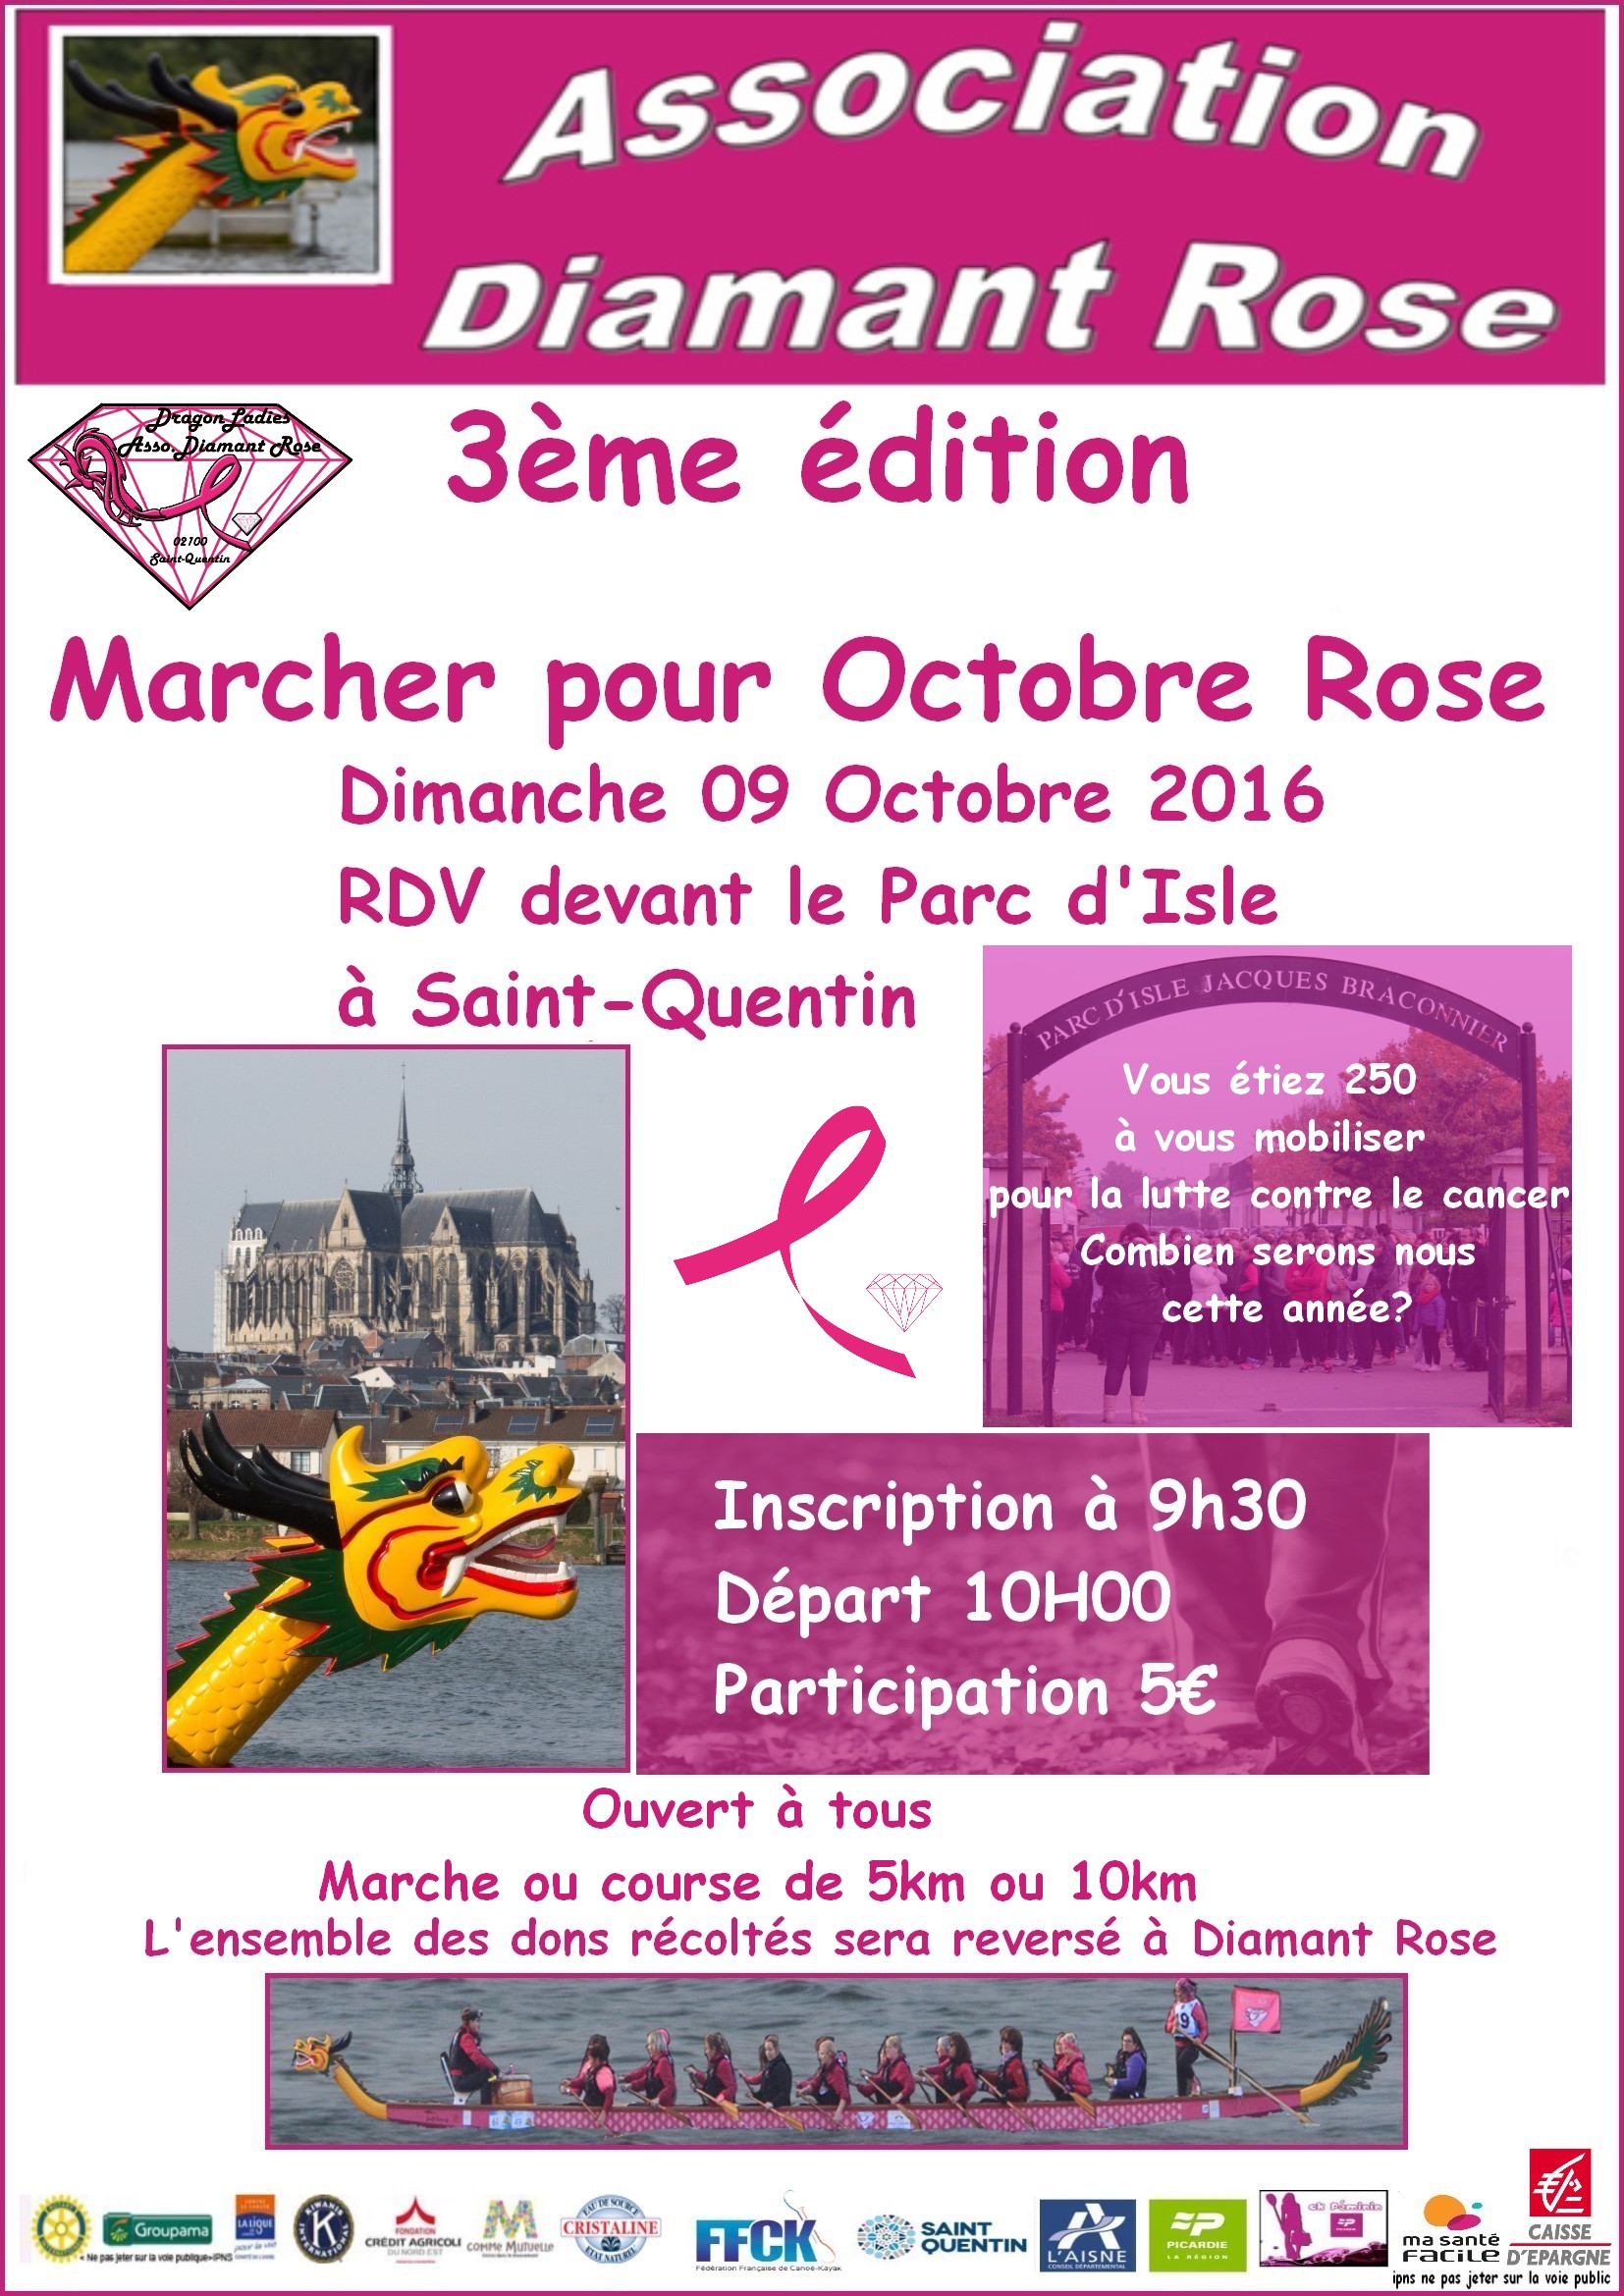 affiche octobre rose 2016 asso [90158]